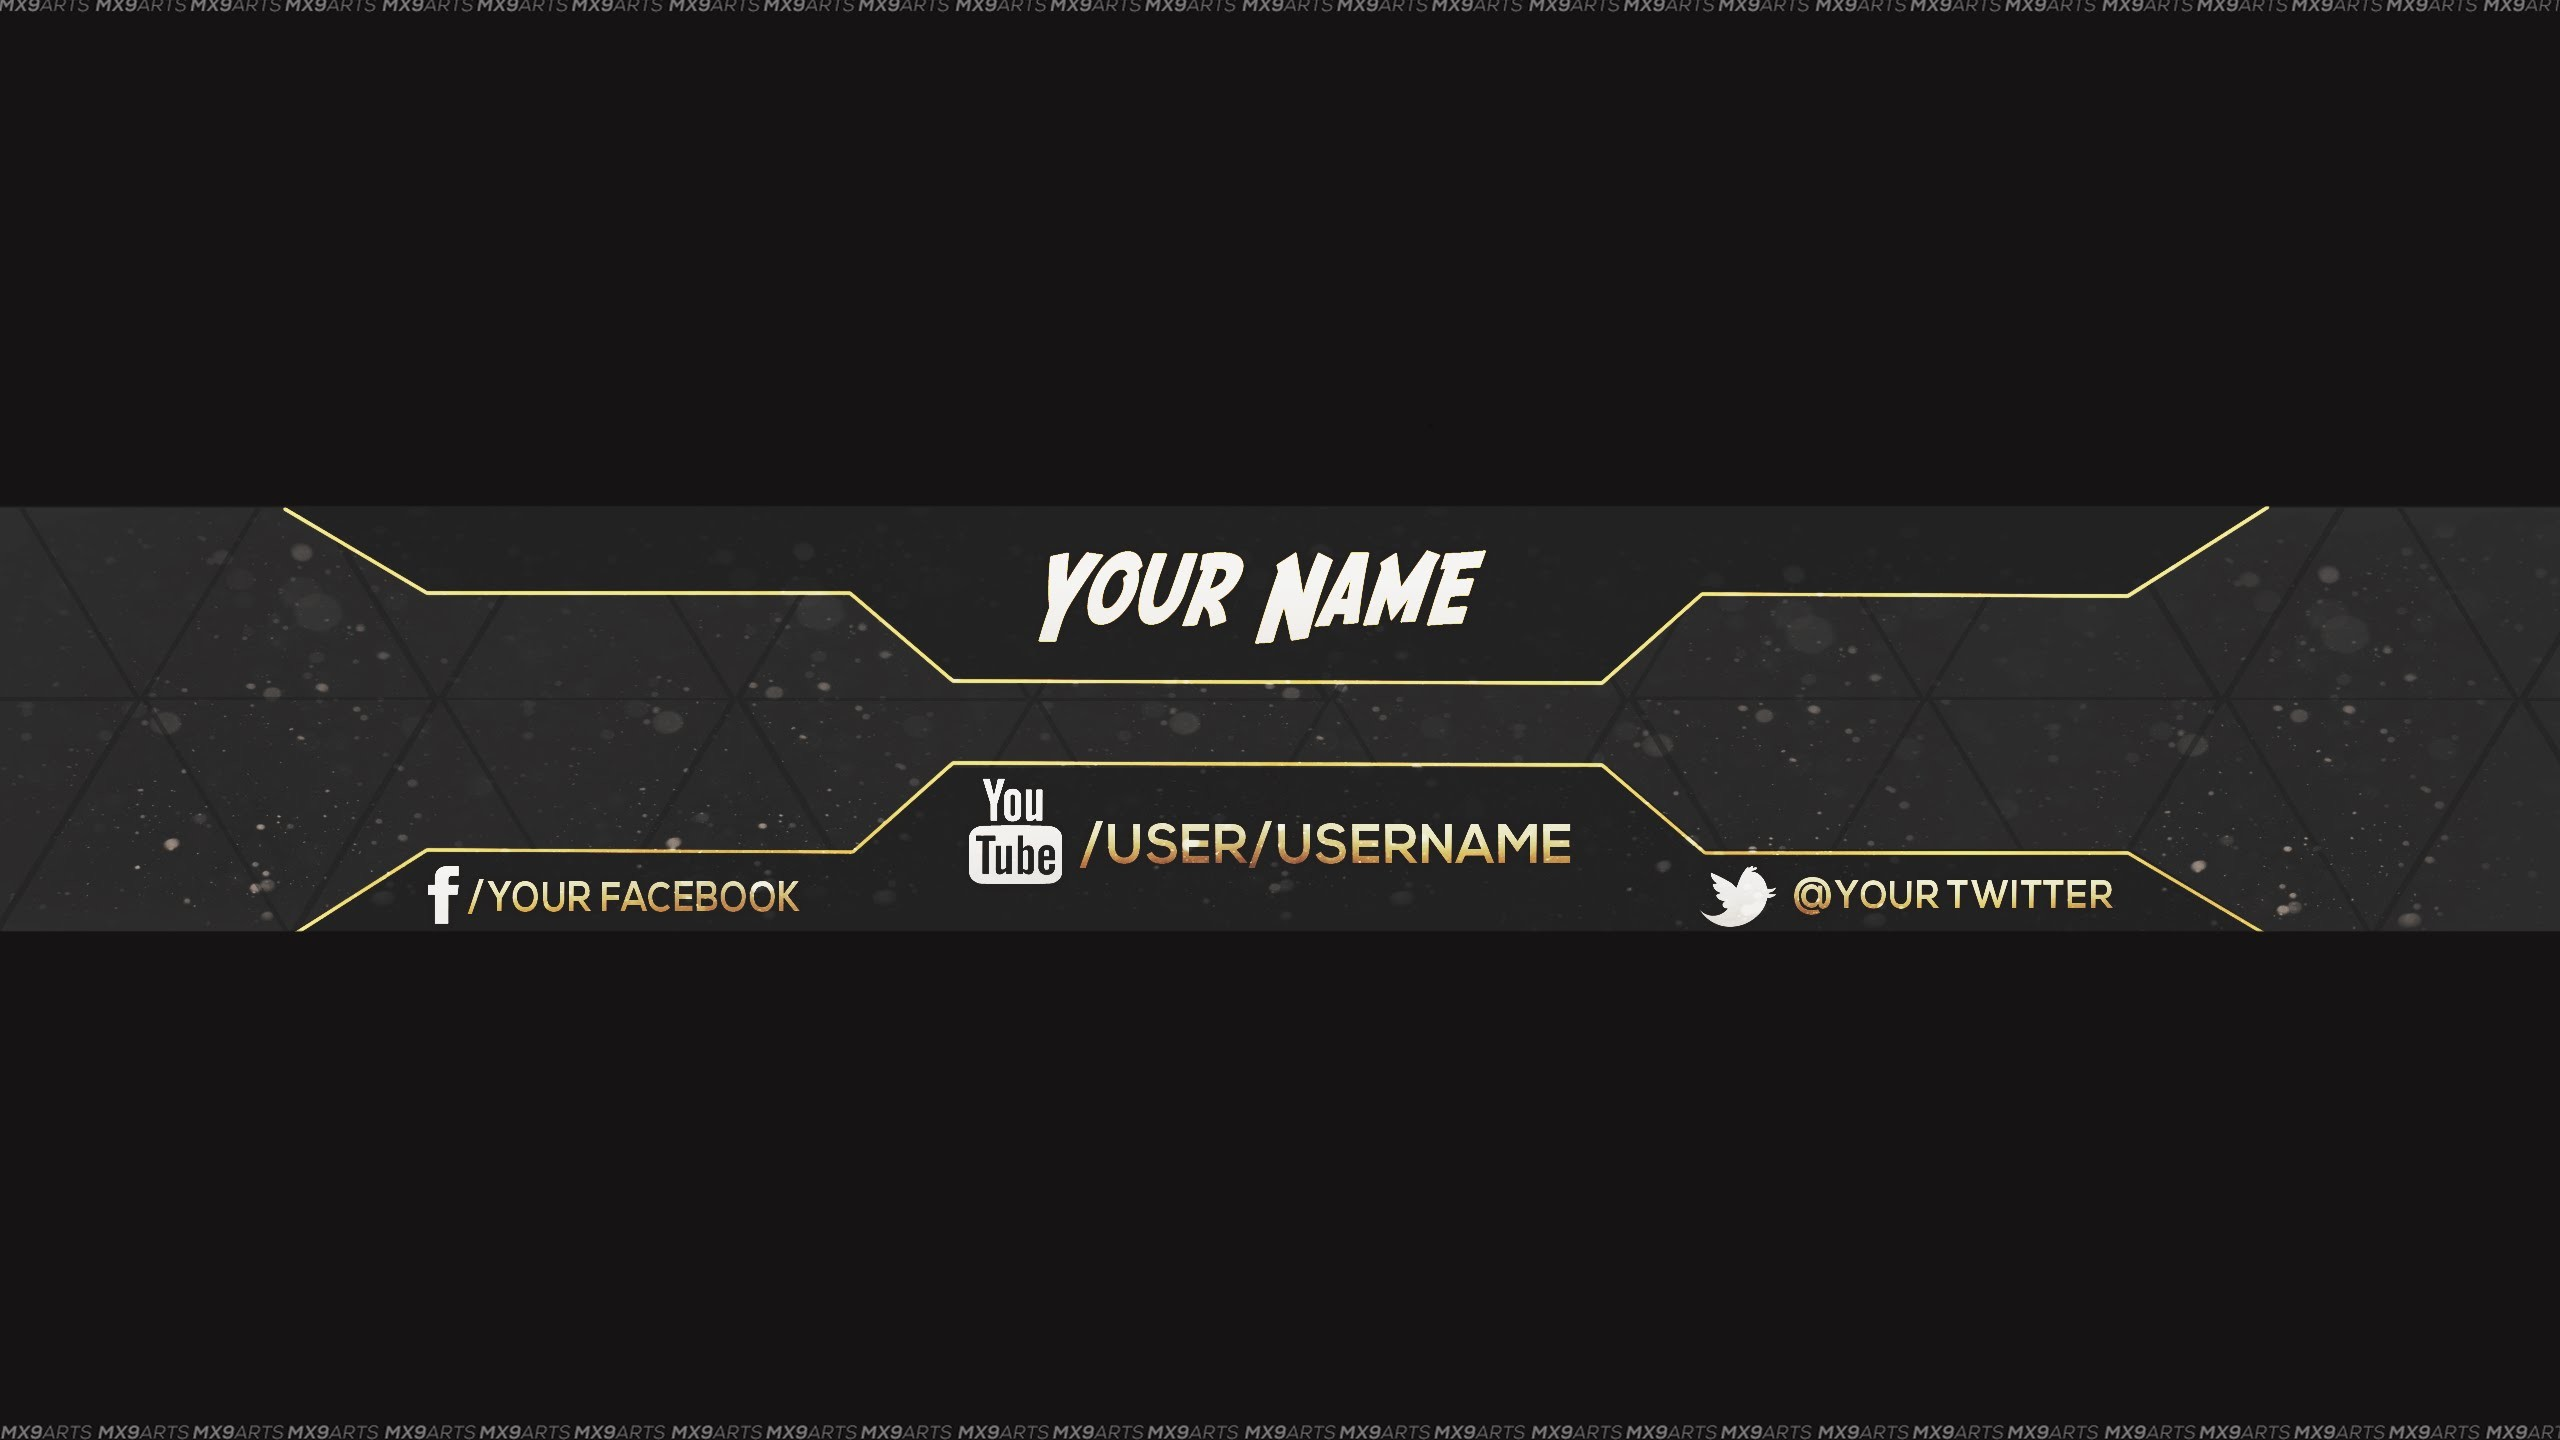 [REUPLOAD] FREE Amazing Youtube Channel Banner Template #5 + Direct  Download Link – YouTube